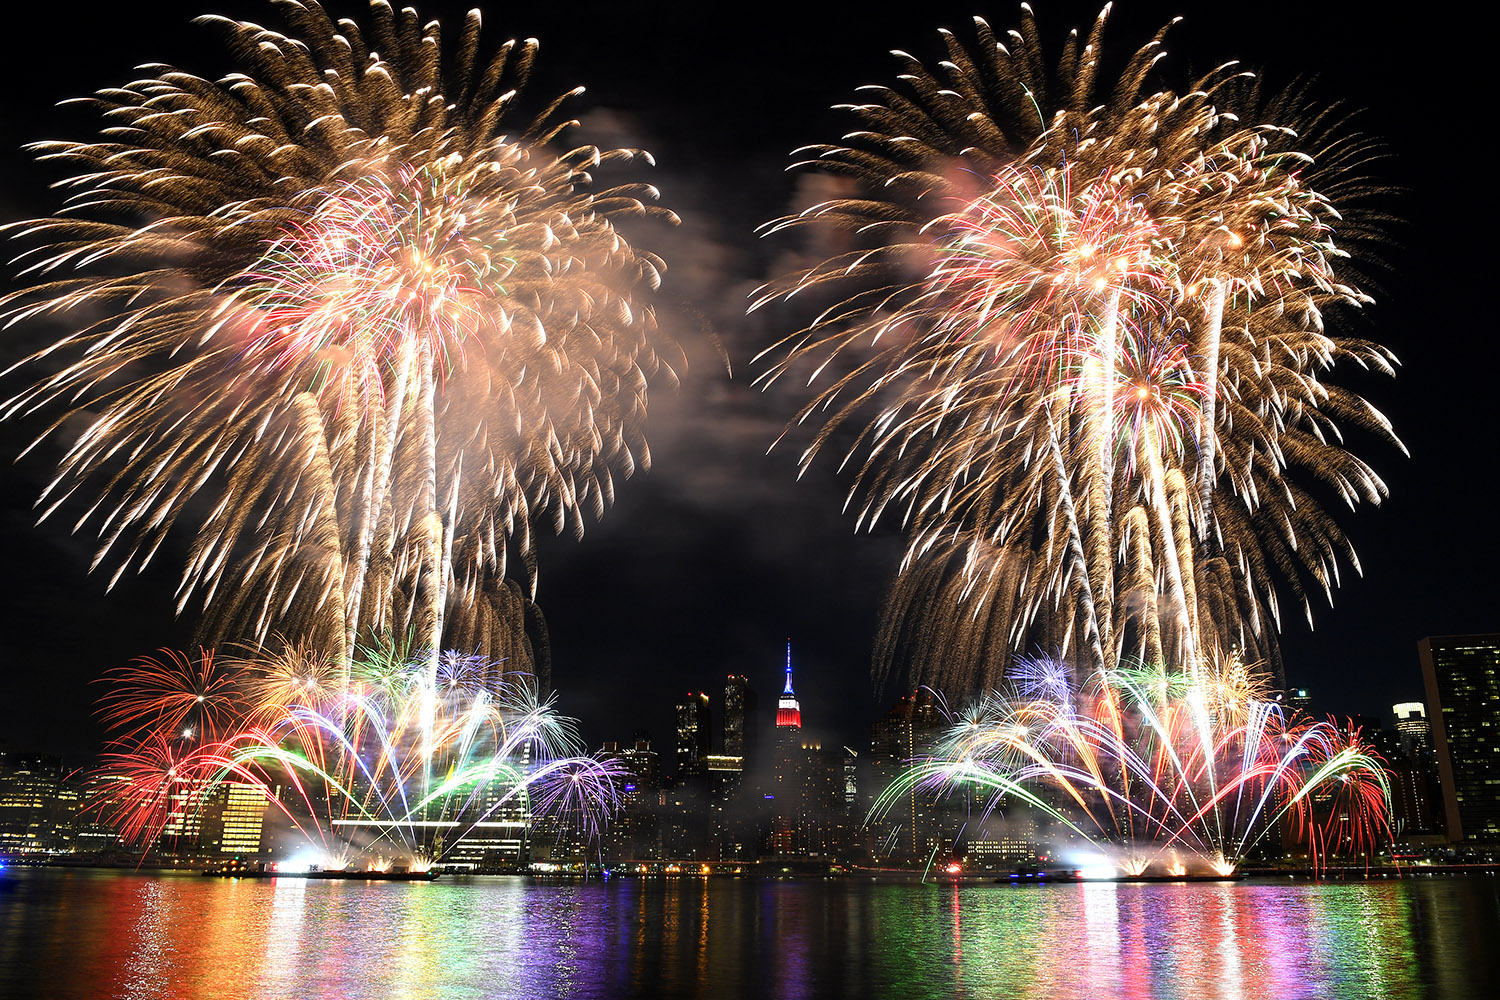 Fourth of July fireworks—spread out over several nights in New York City—light up the skyline June 29. Dimitrios Kambouris/Getty Images